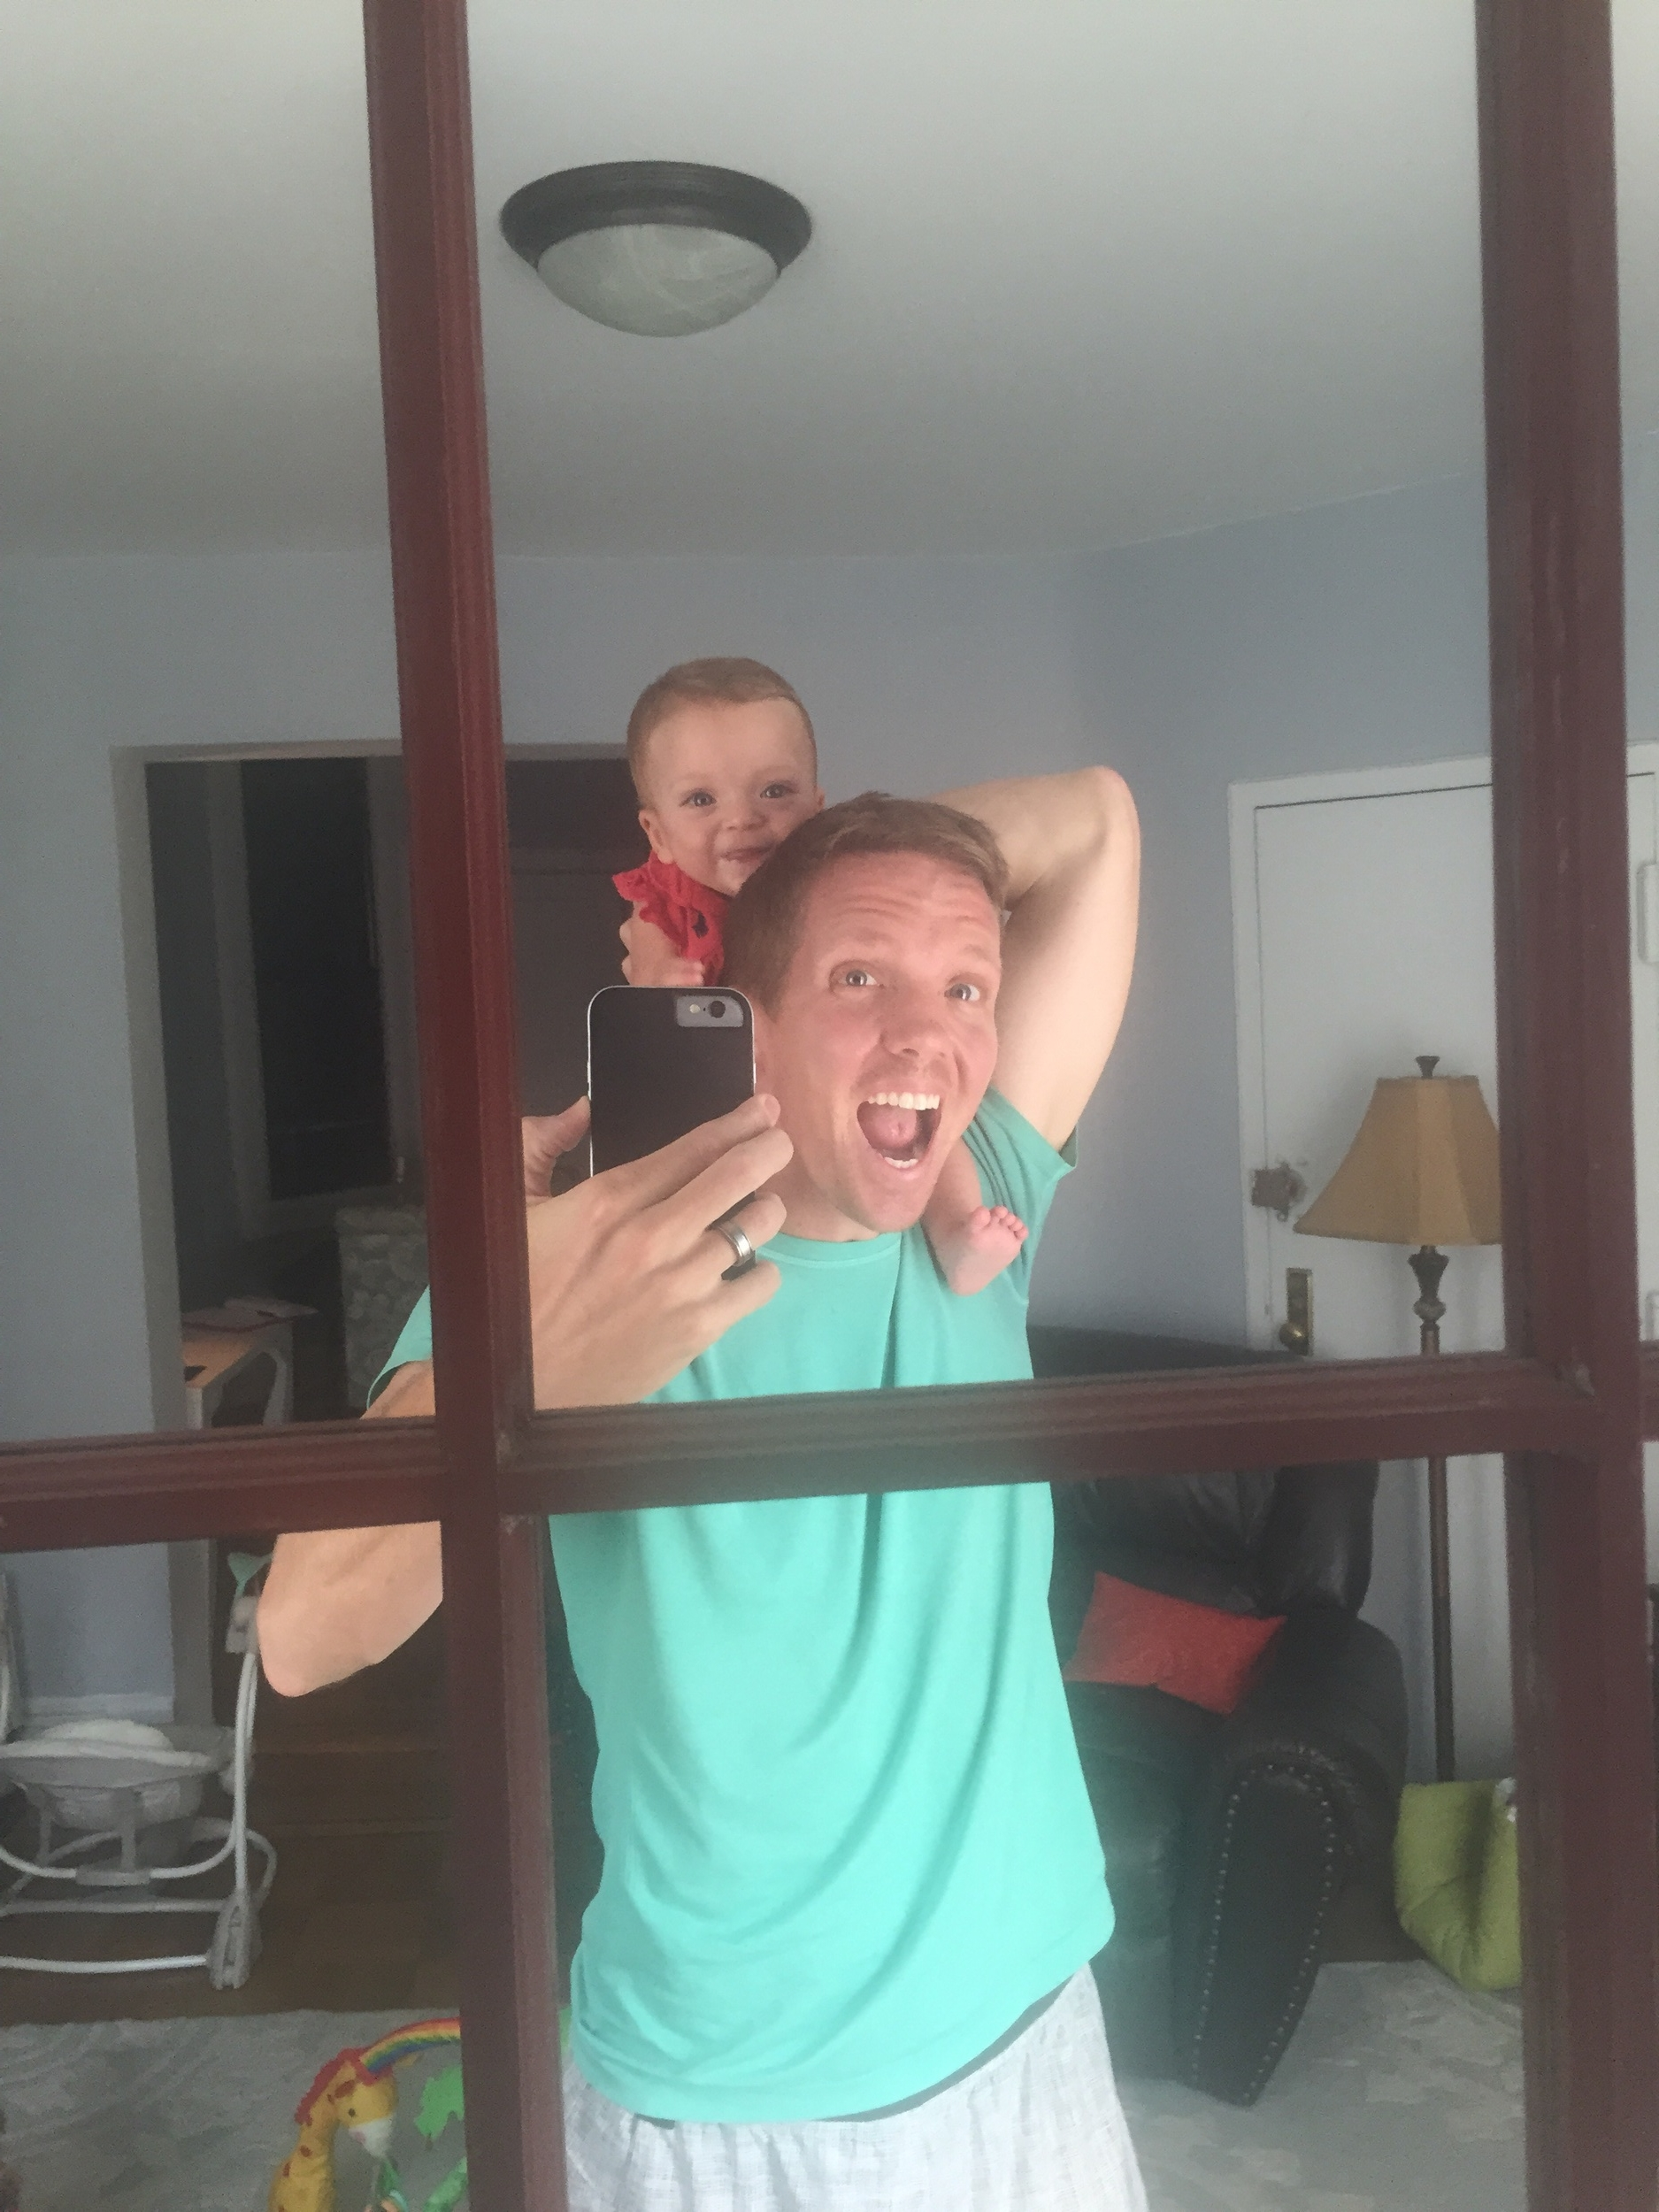 Discovering the mirror/play time with daddy